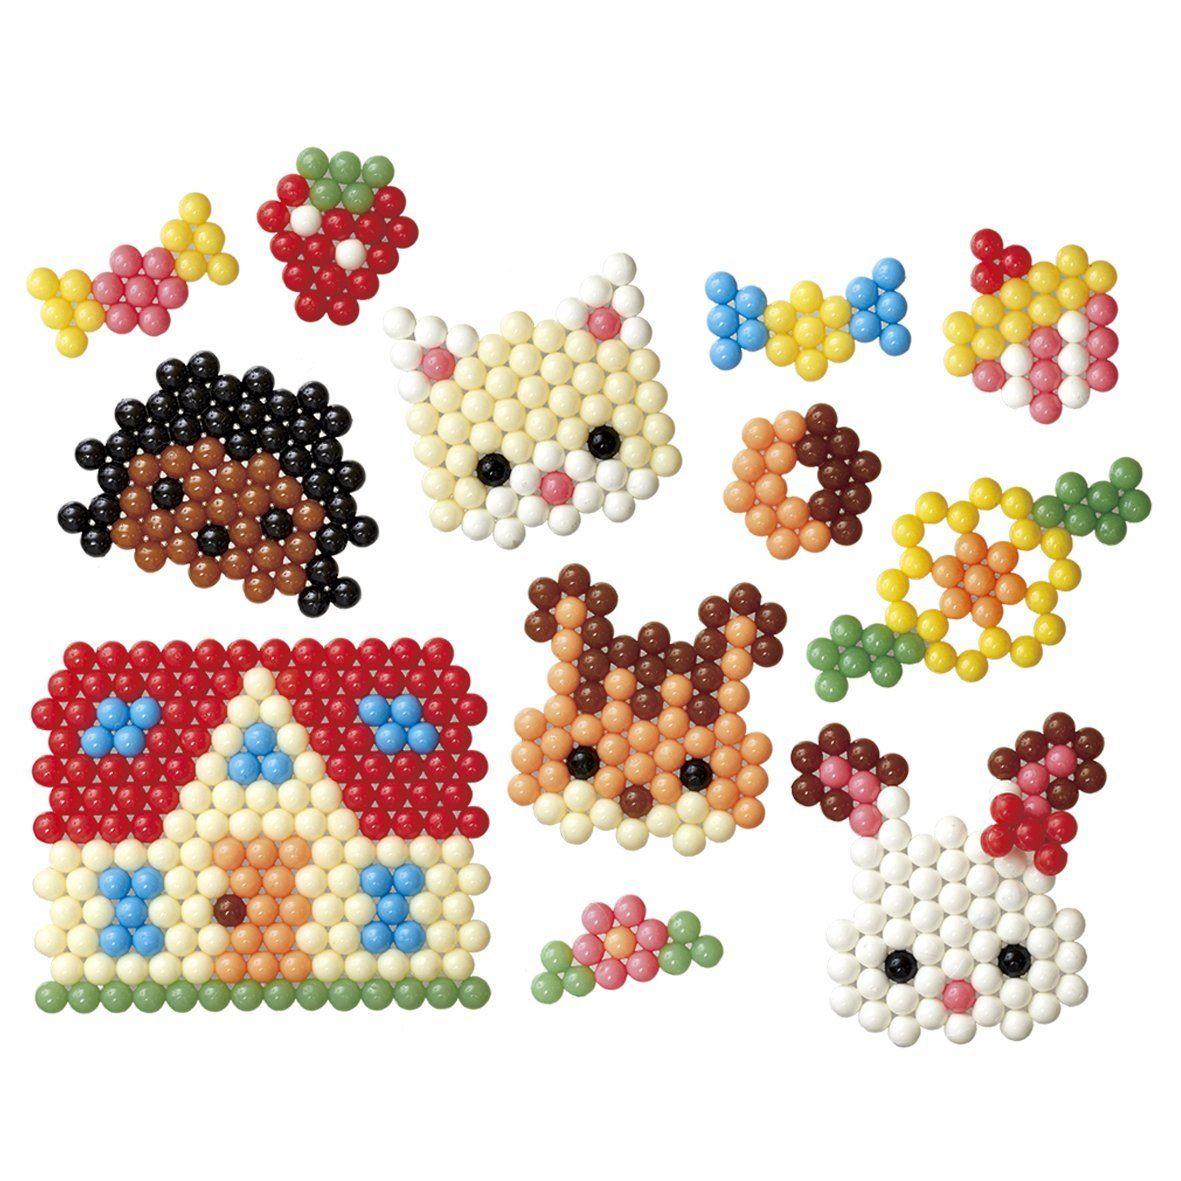 Aqua Beads Sets Starter Sets Aqua Beads Refils Sea Life Sweets - Aquabeads templates